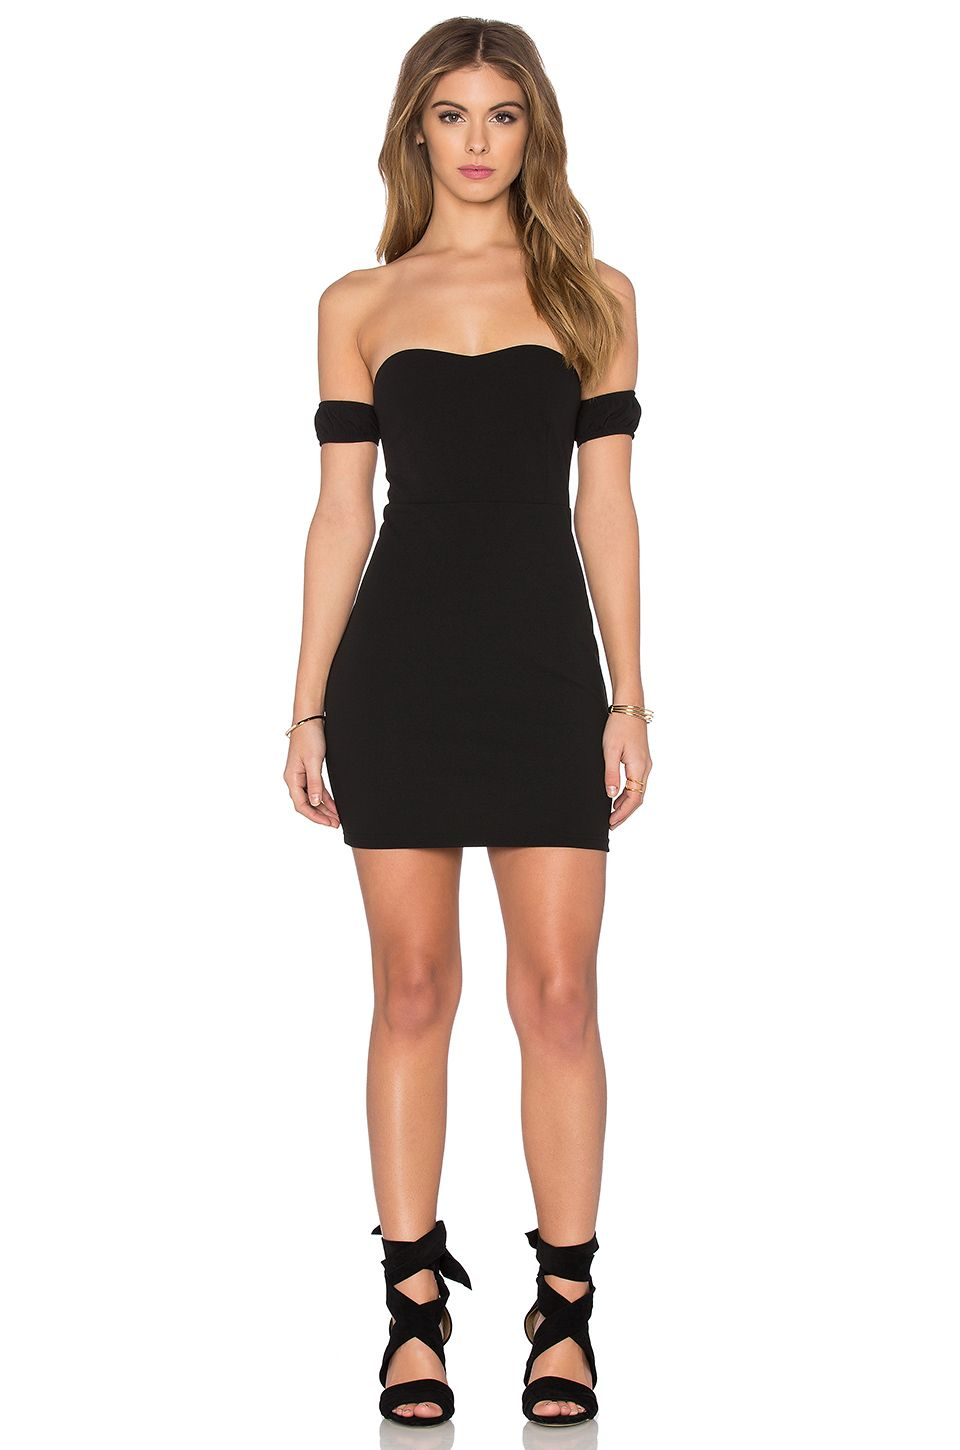 Revolve has the sexiest selection of little black dresses